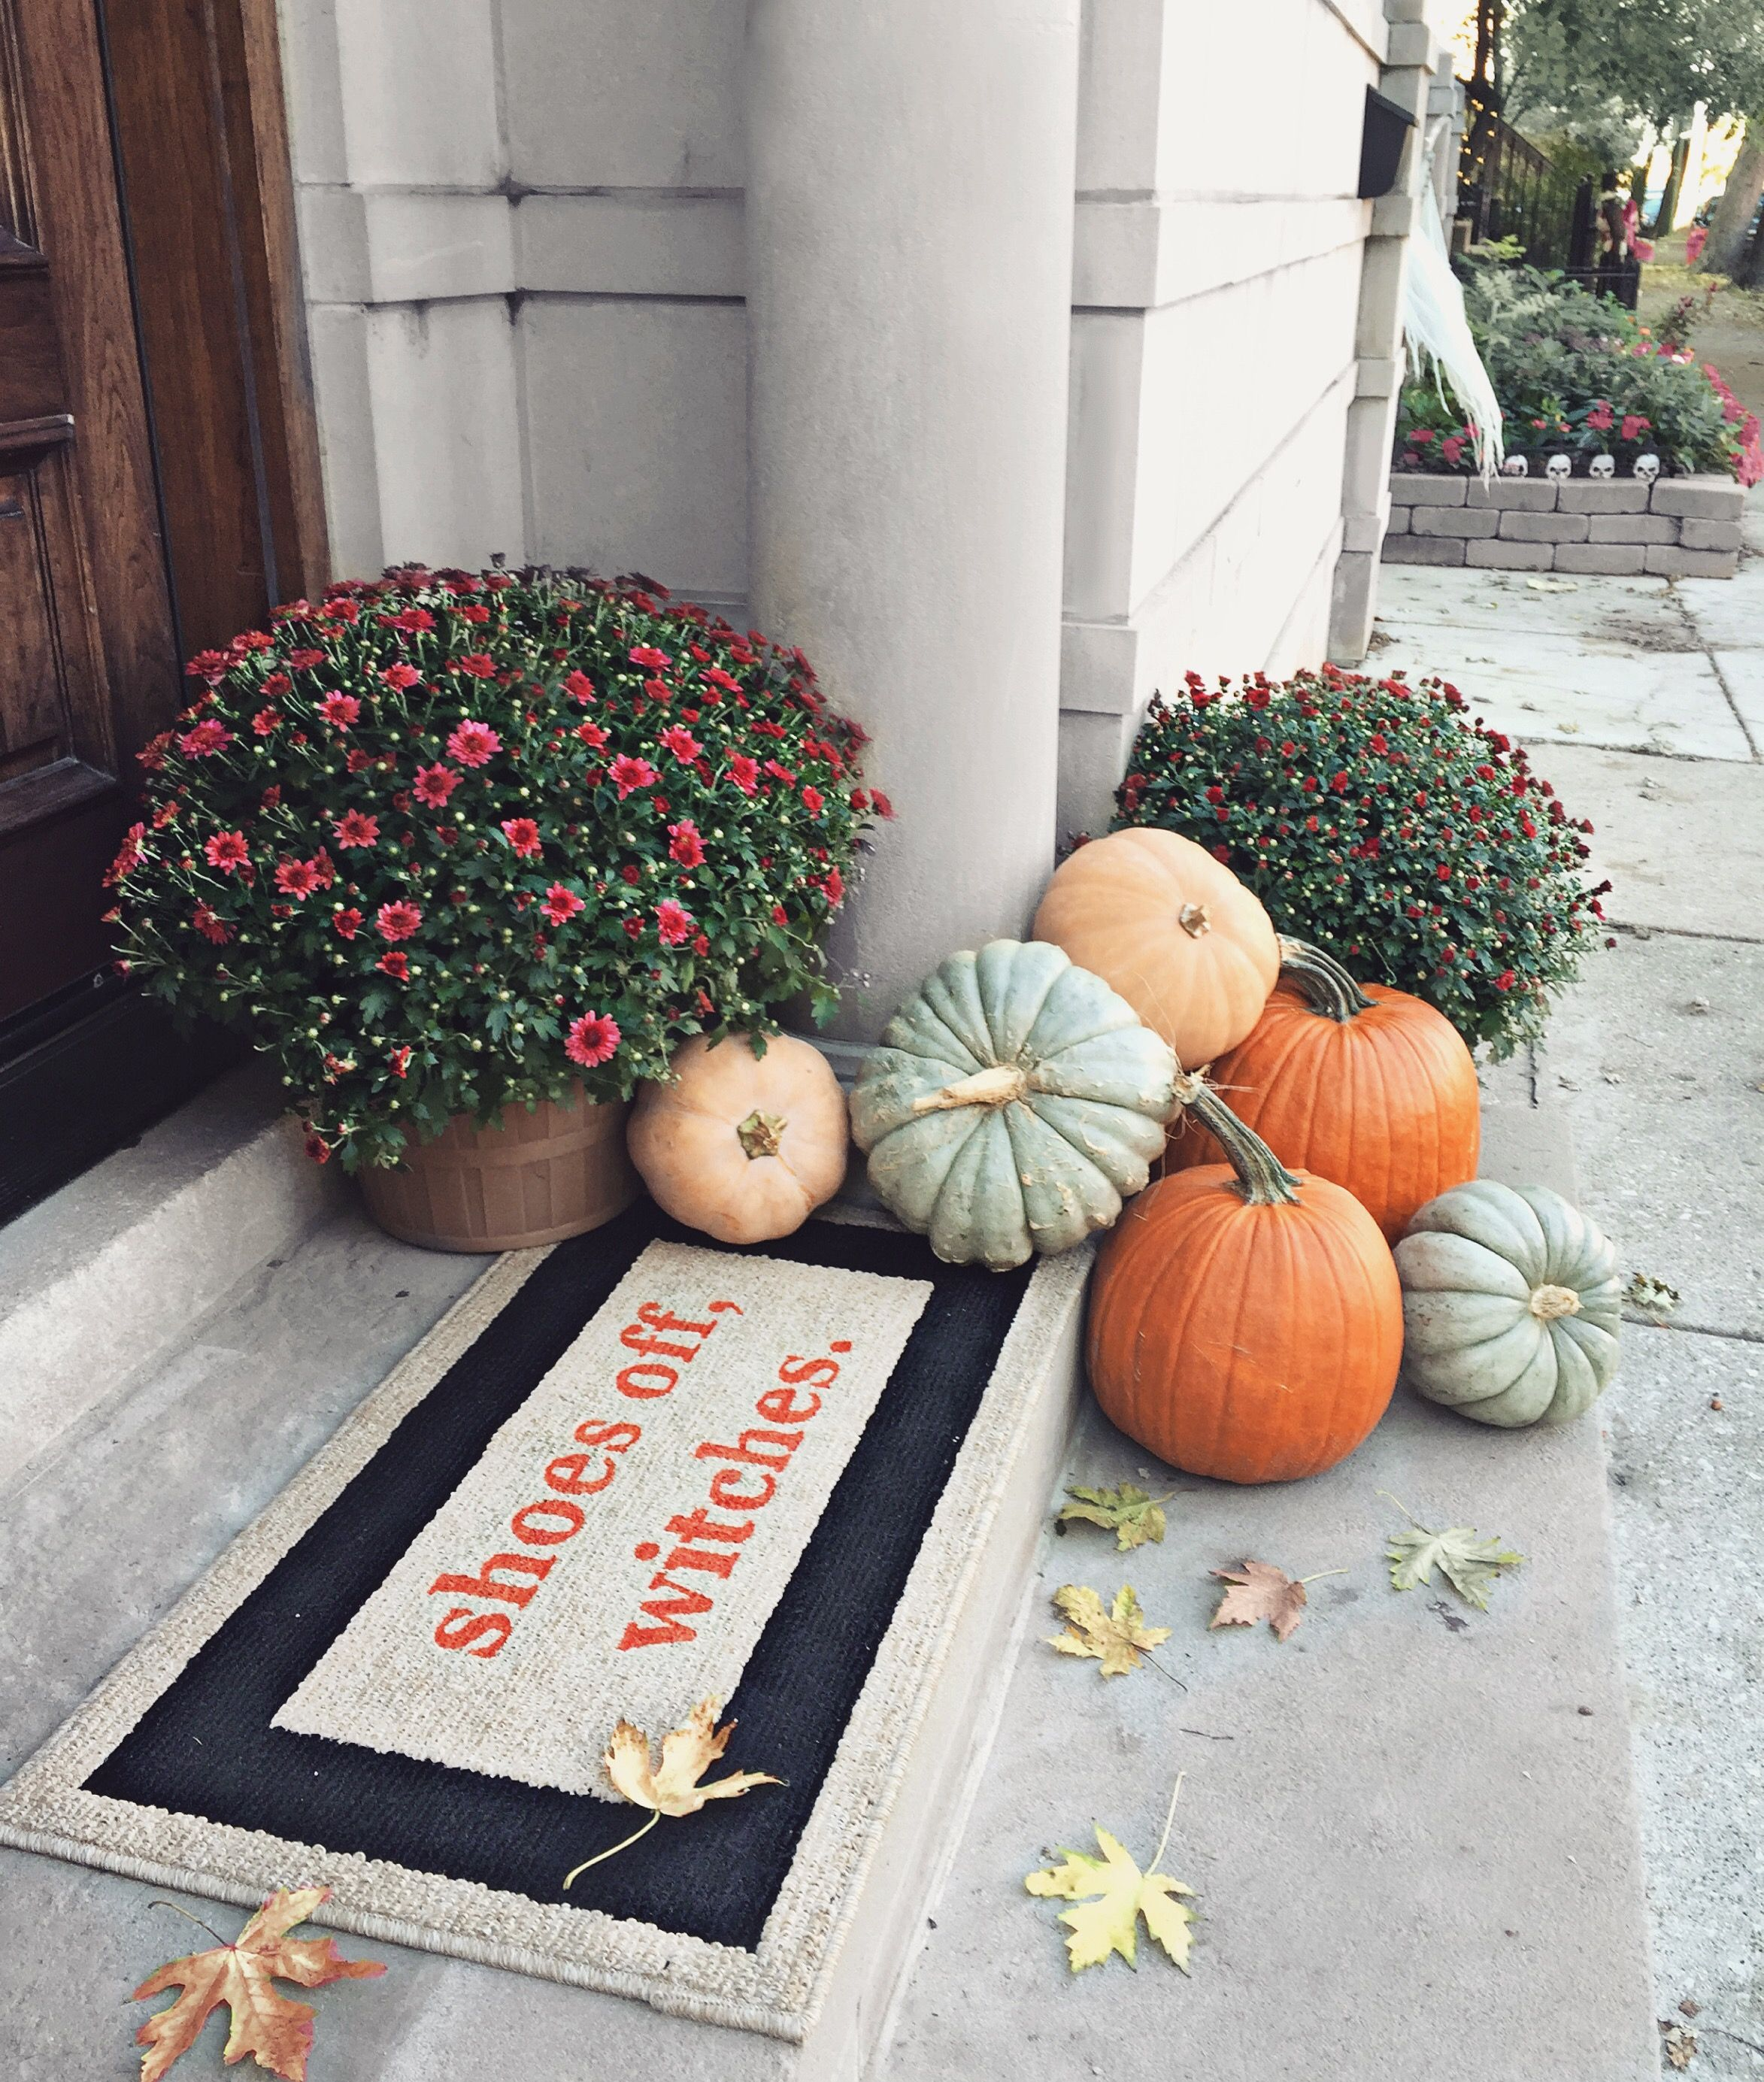 39 Easy But Creative Fall Porch Decorating Ideas Apartment Decor Holiday